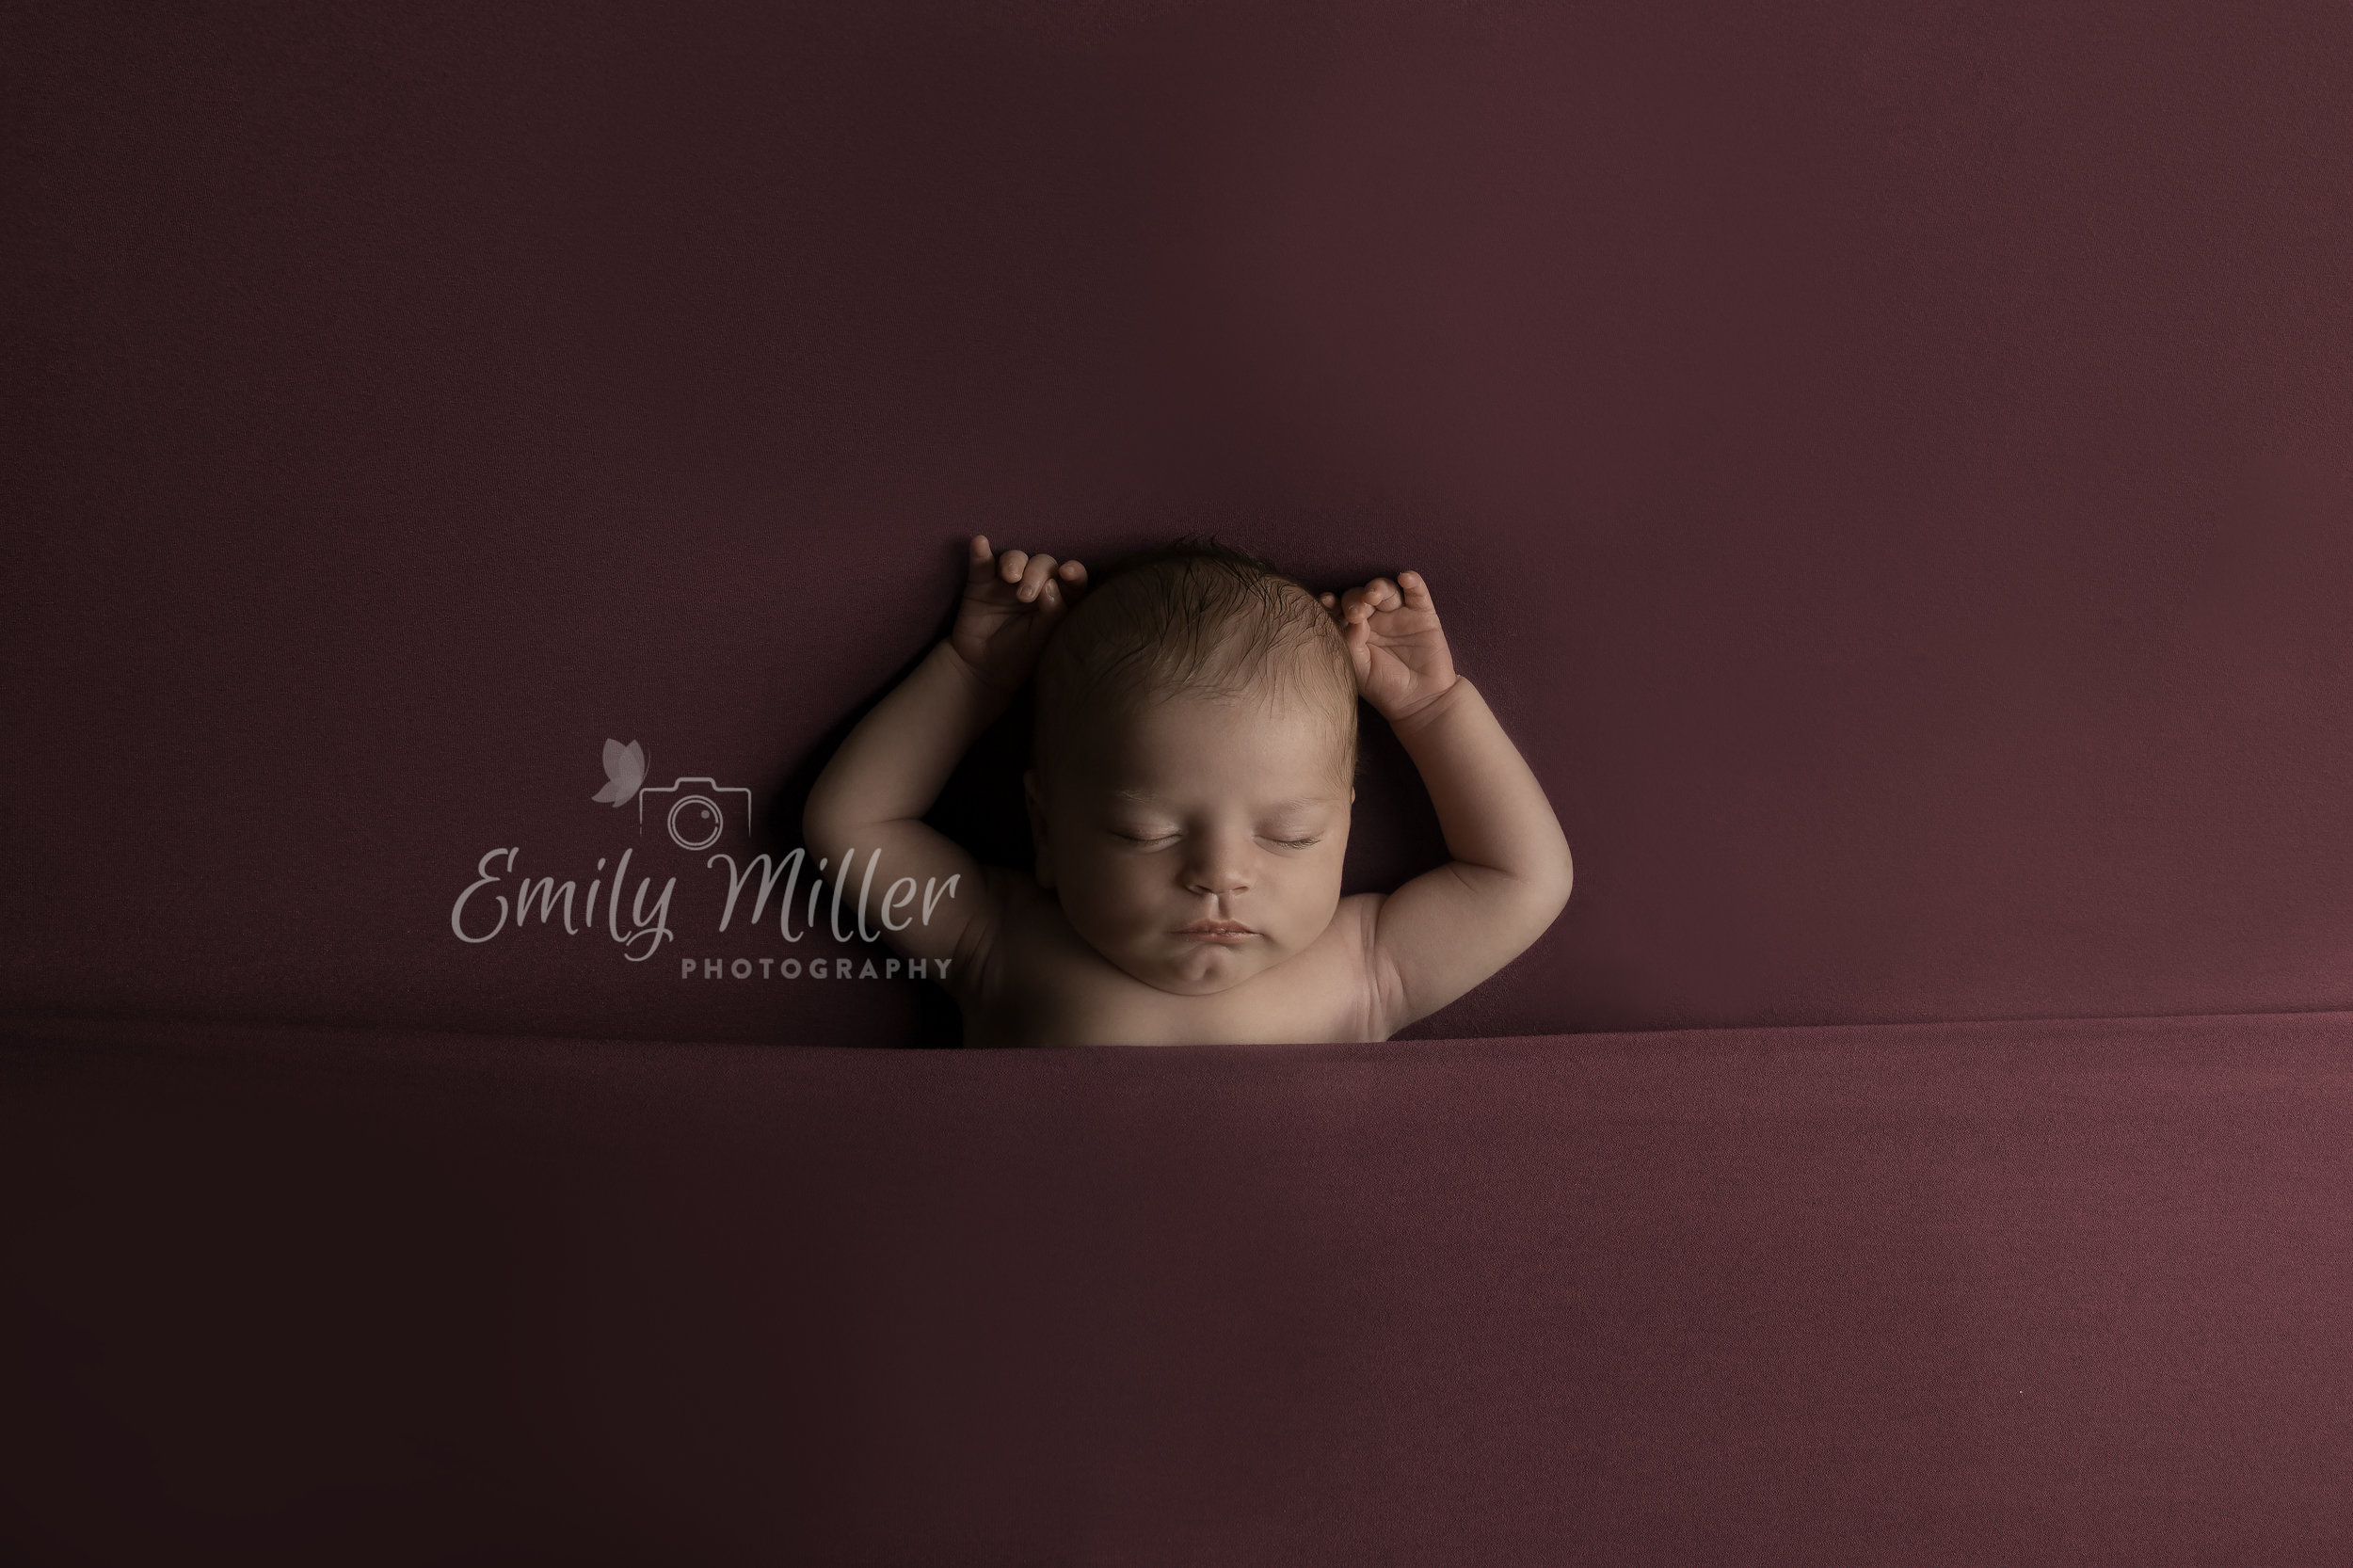 Pure soul. Emily Miller Photography, Chelsfield, Orpington, London Borough of Bromley BR6